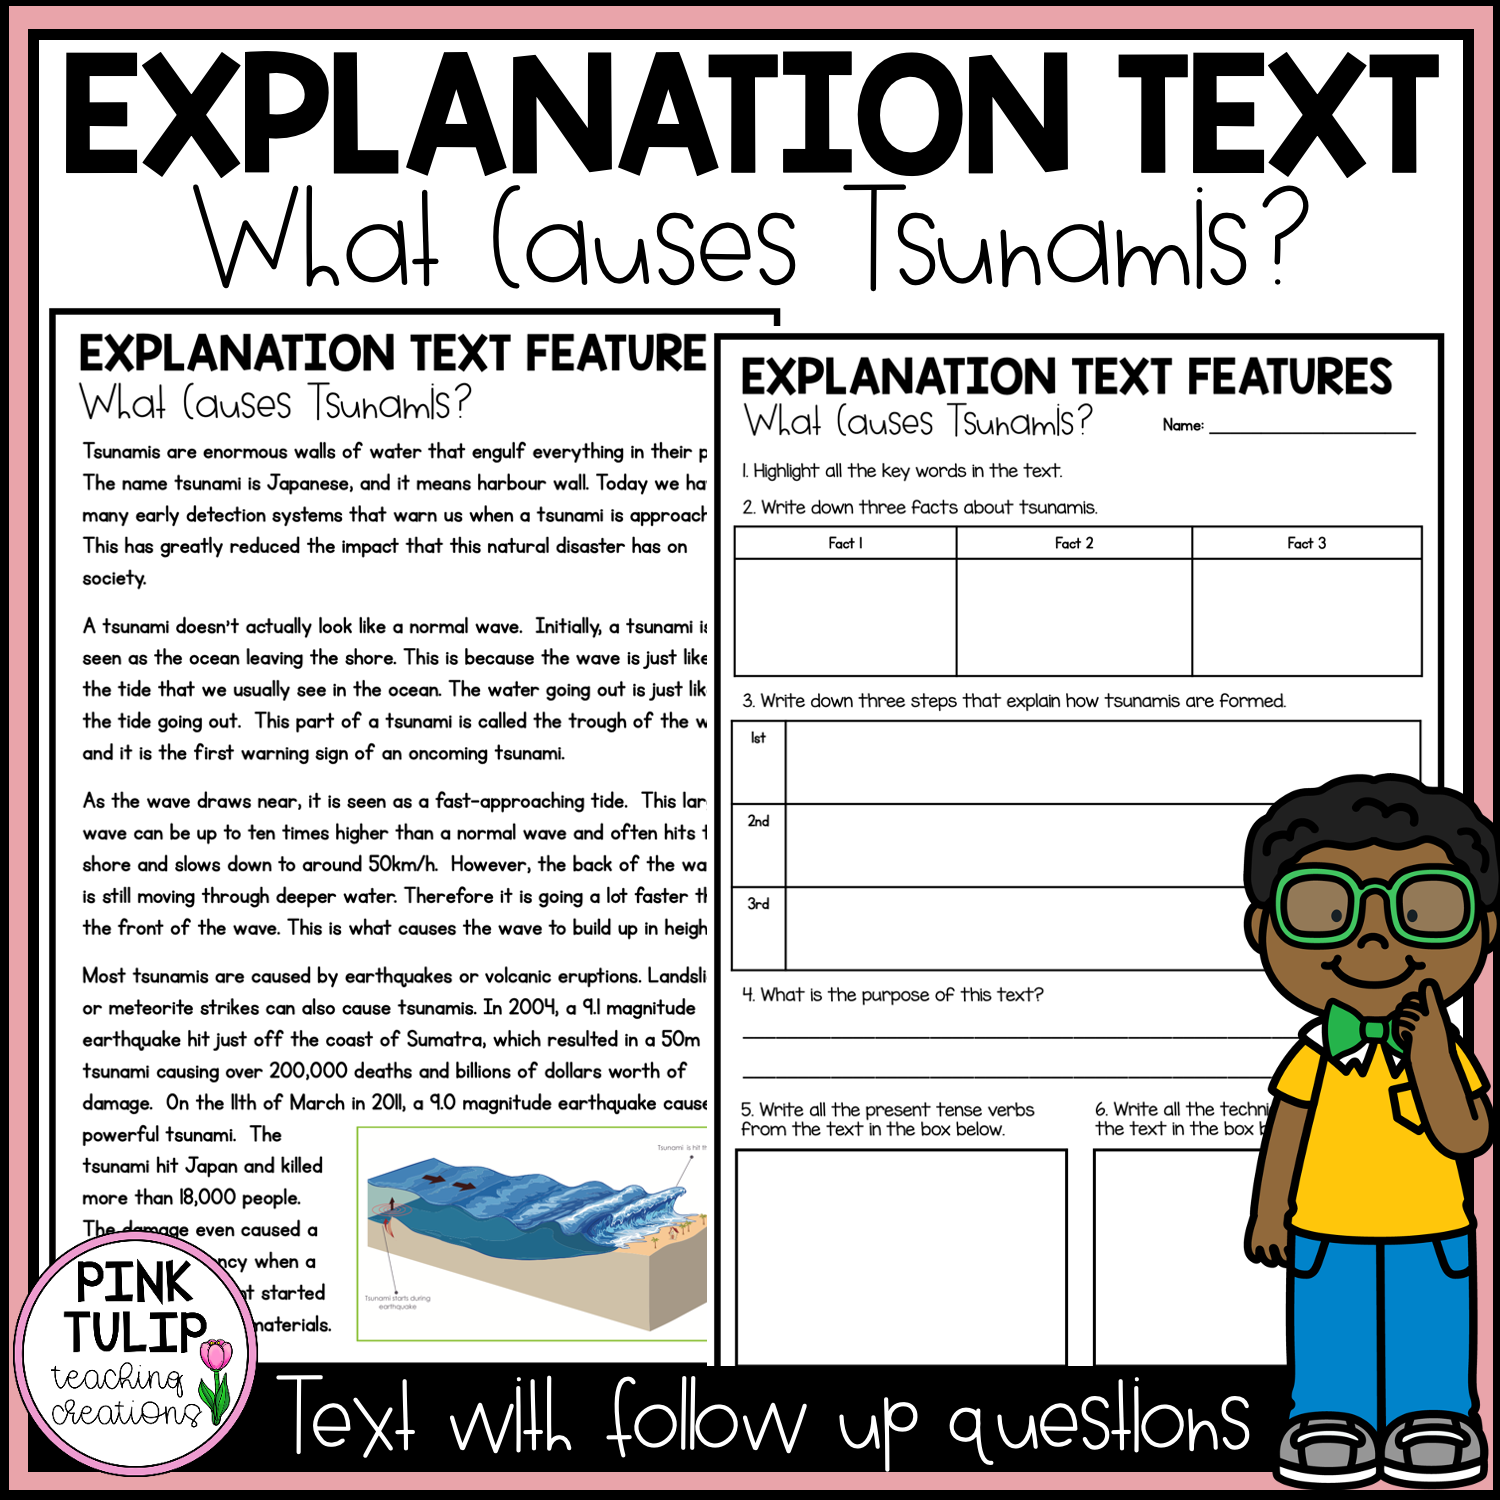 hight resolution of Explanation Text - What Causes Tsunamis?   Explanation text